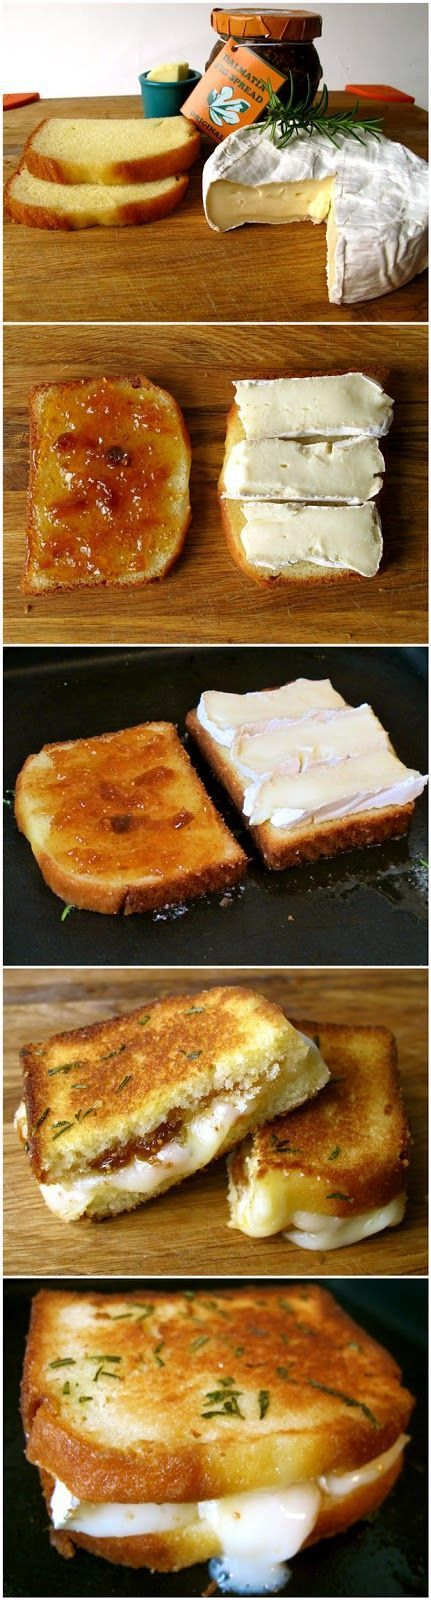 {pound cake grilled cheese} brie, fig jam, rosemary butter oh my this sounds dangerous!!!!